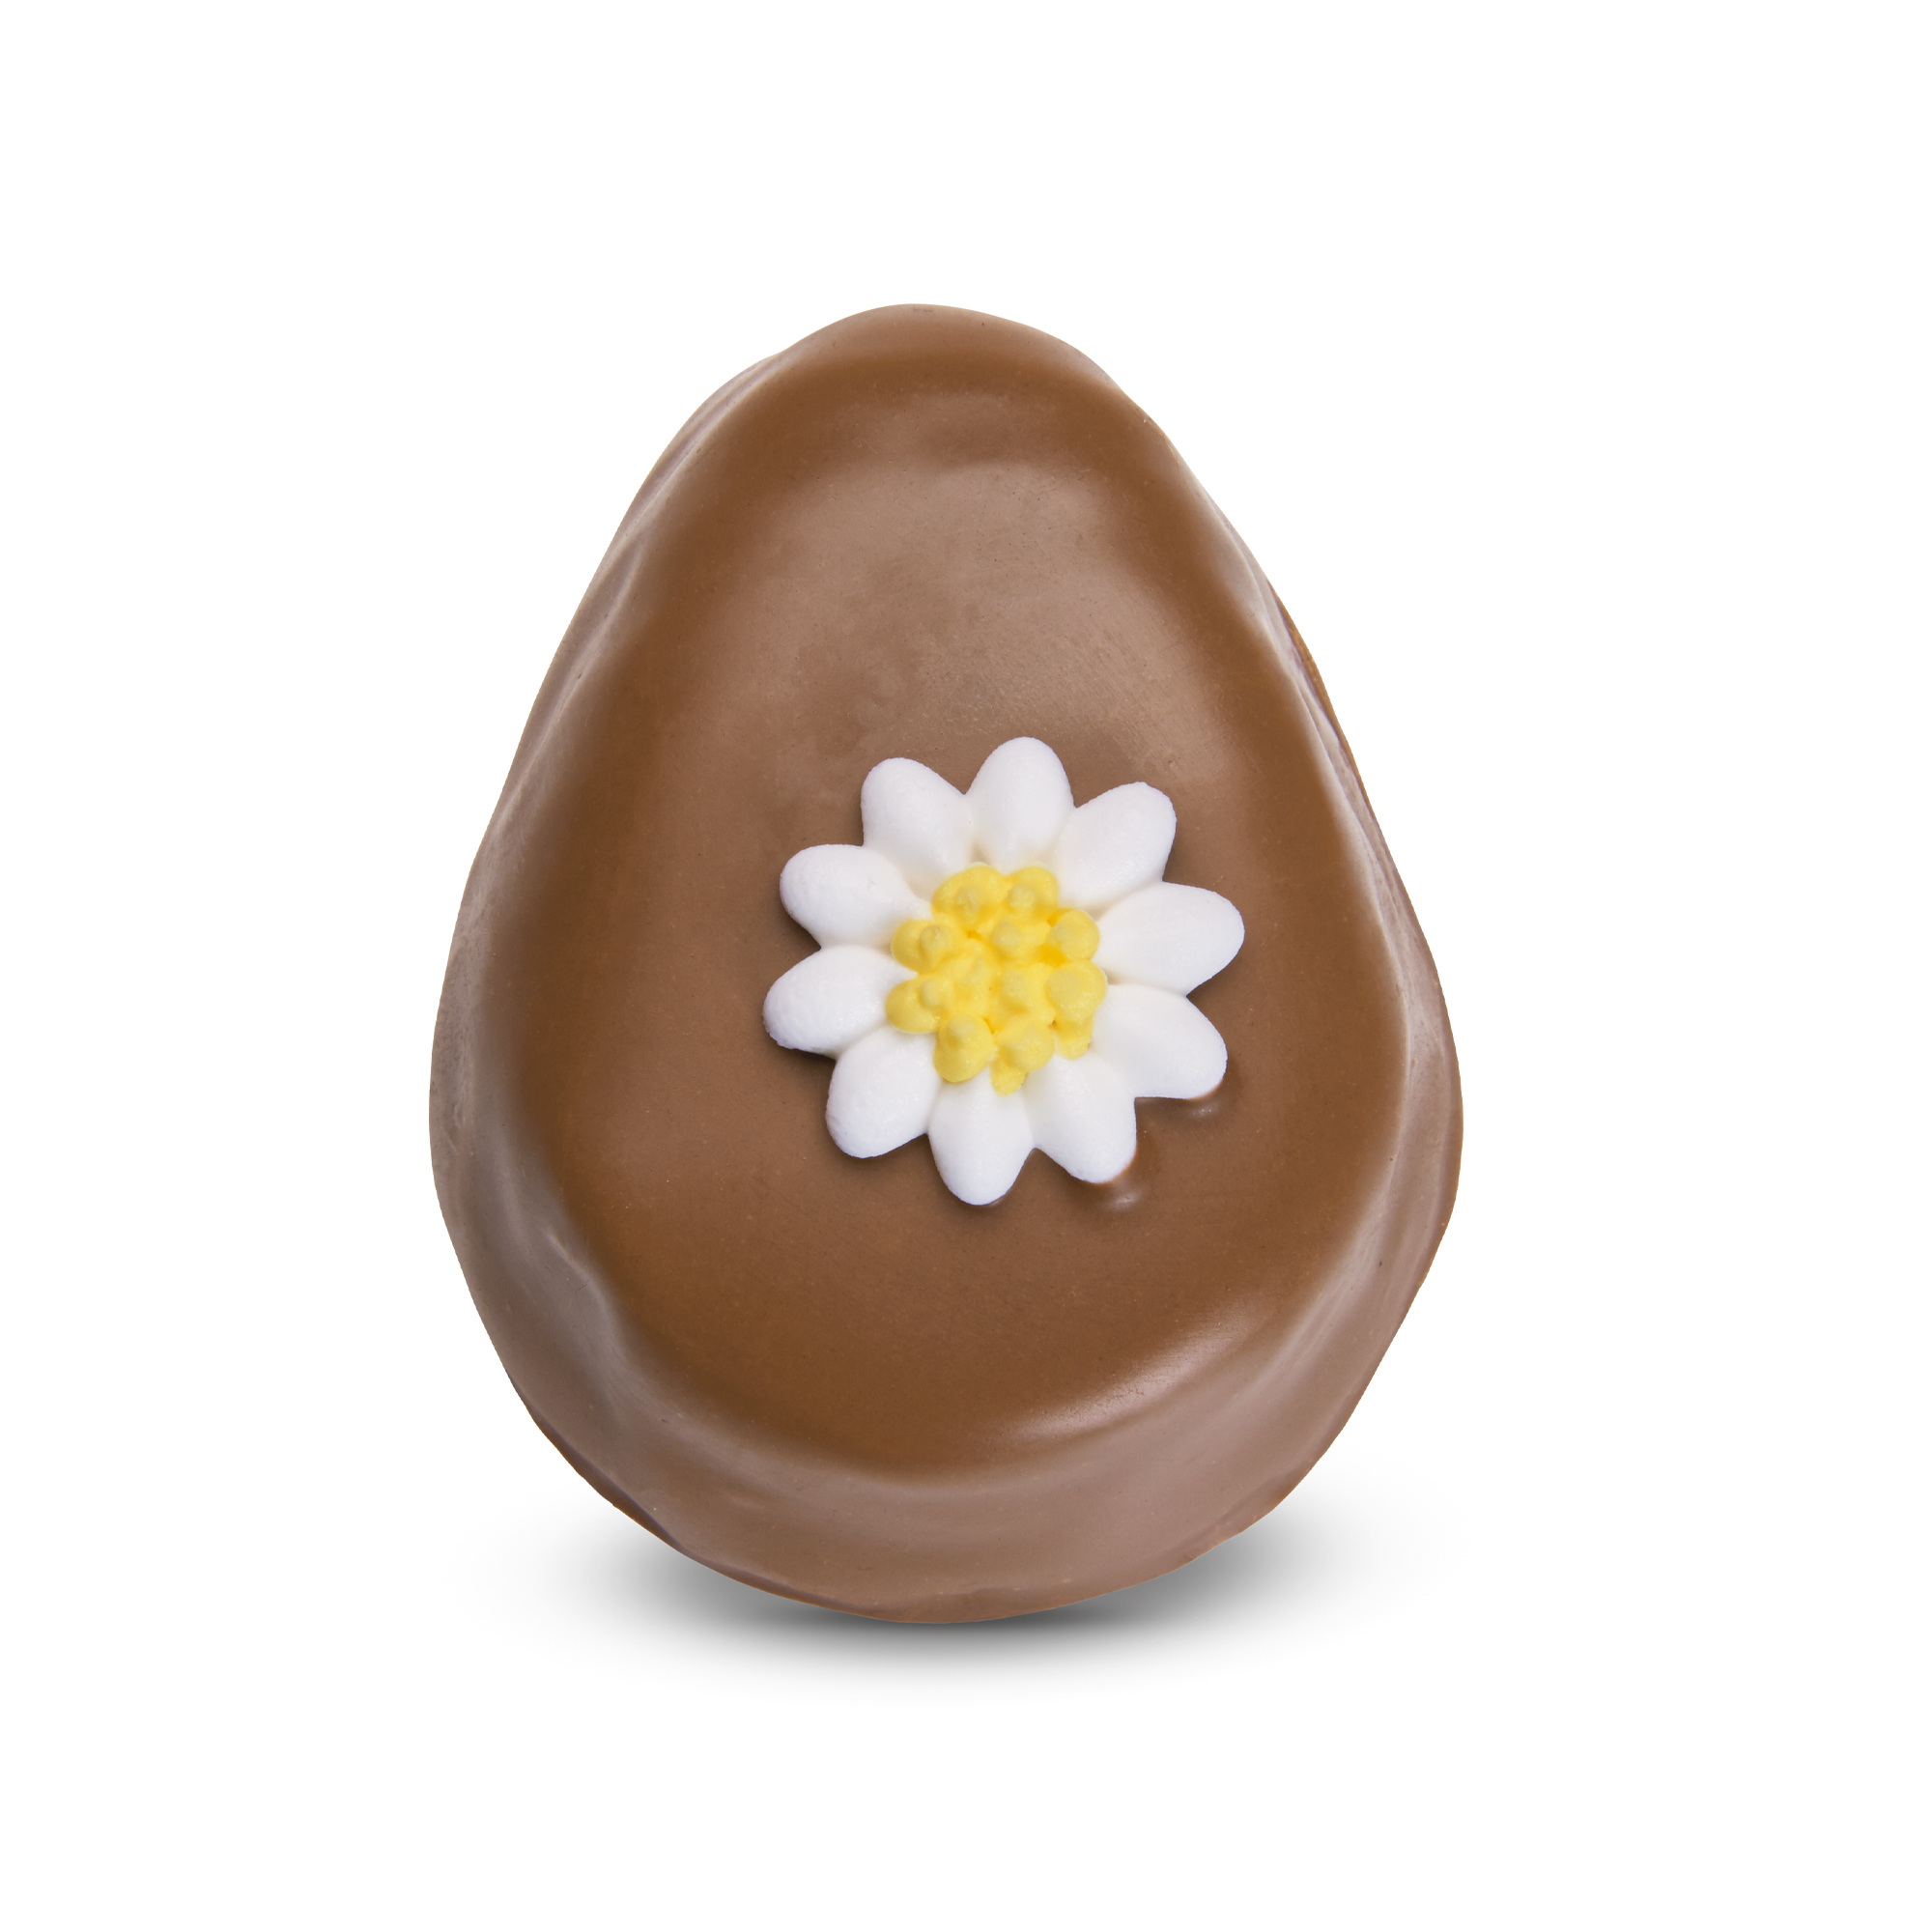 View of Chocolate Butter Egg